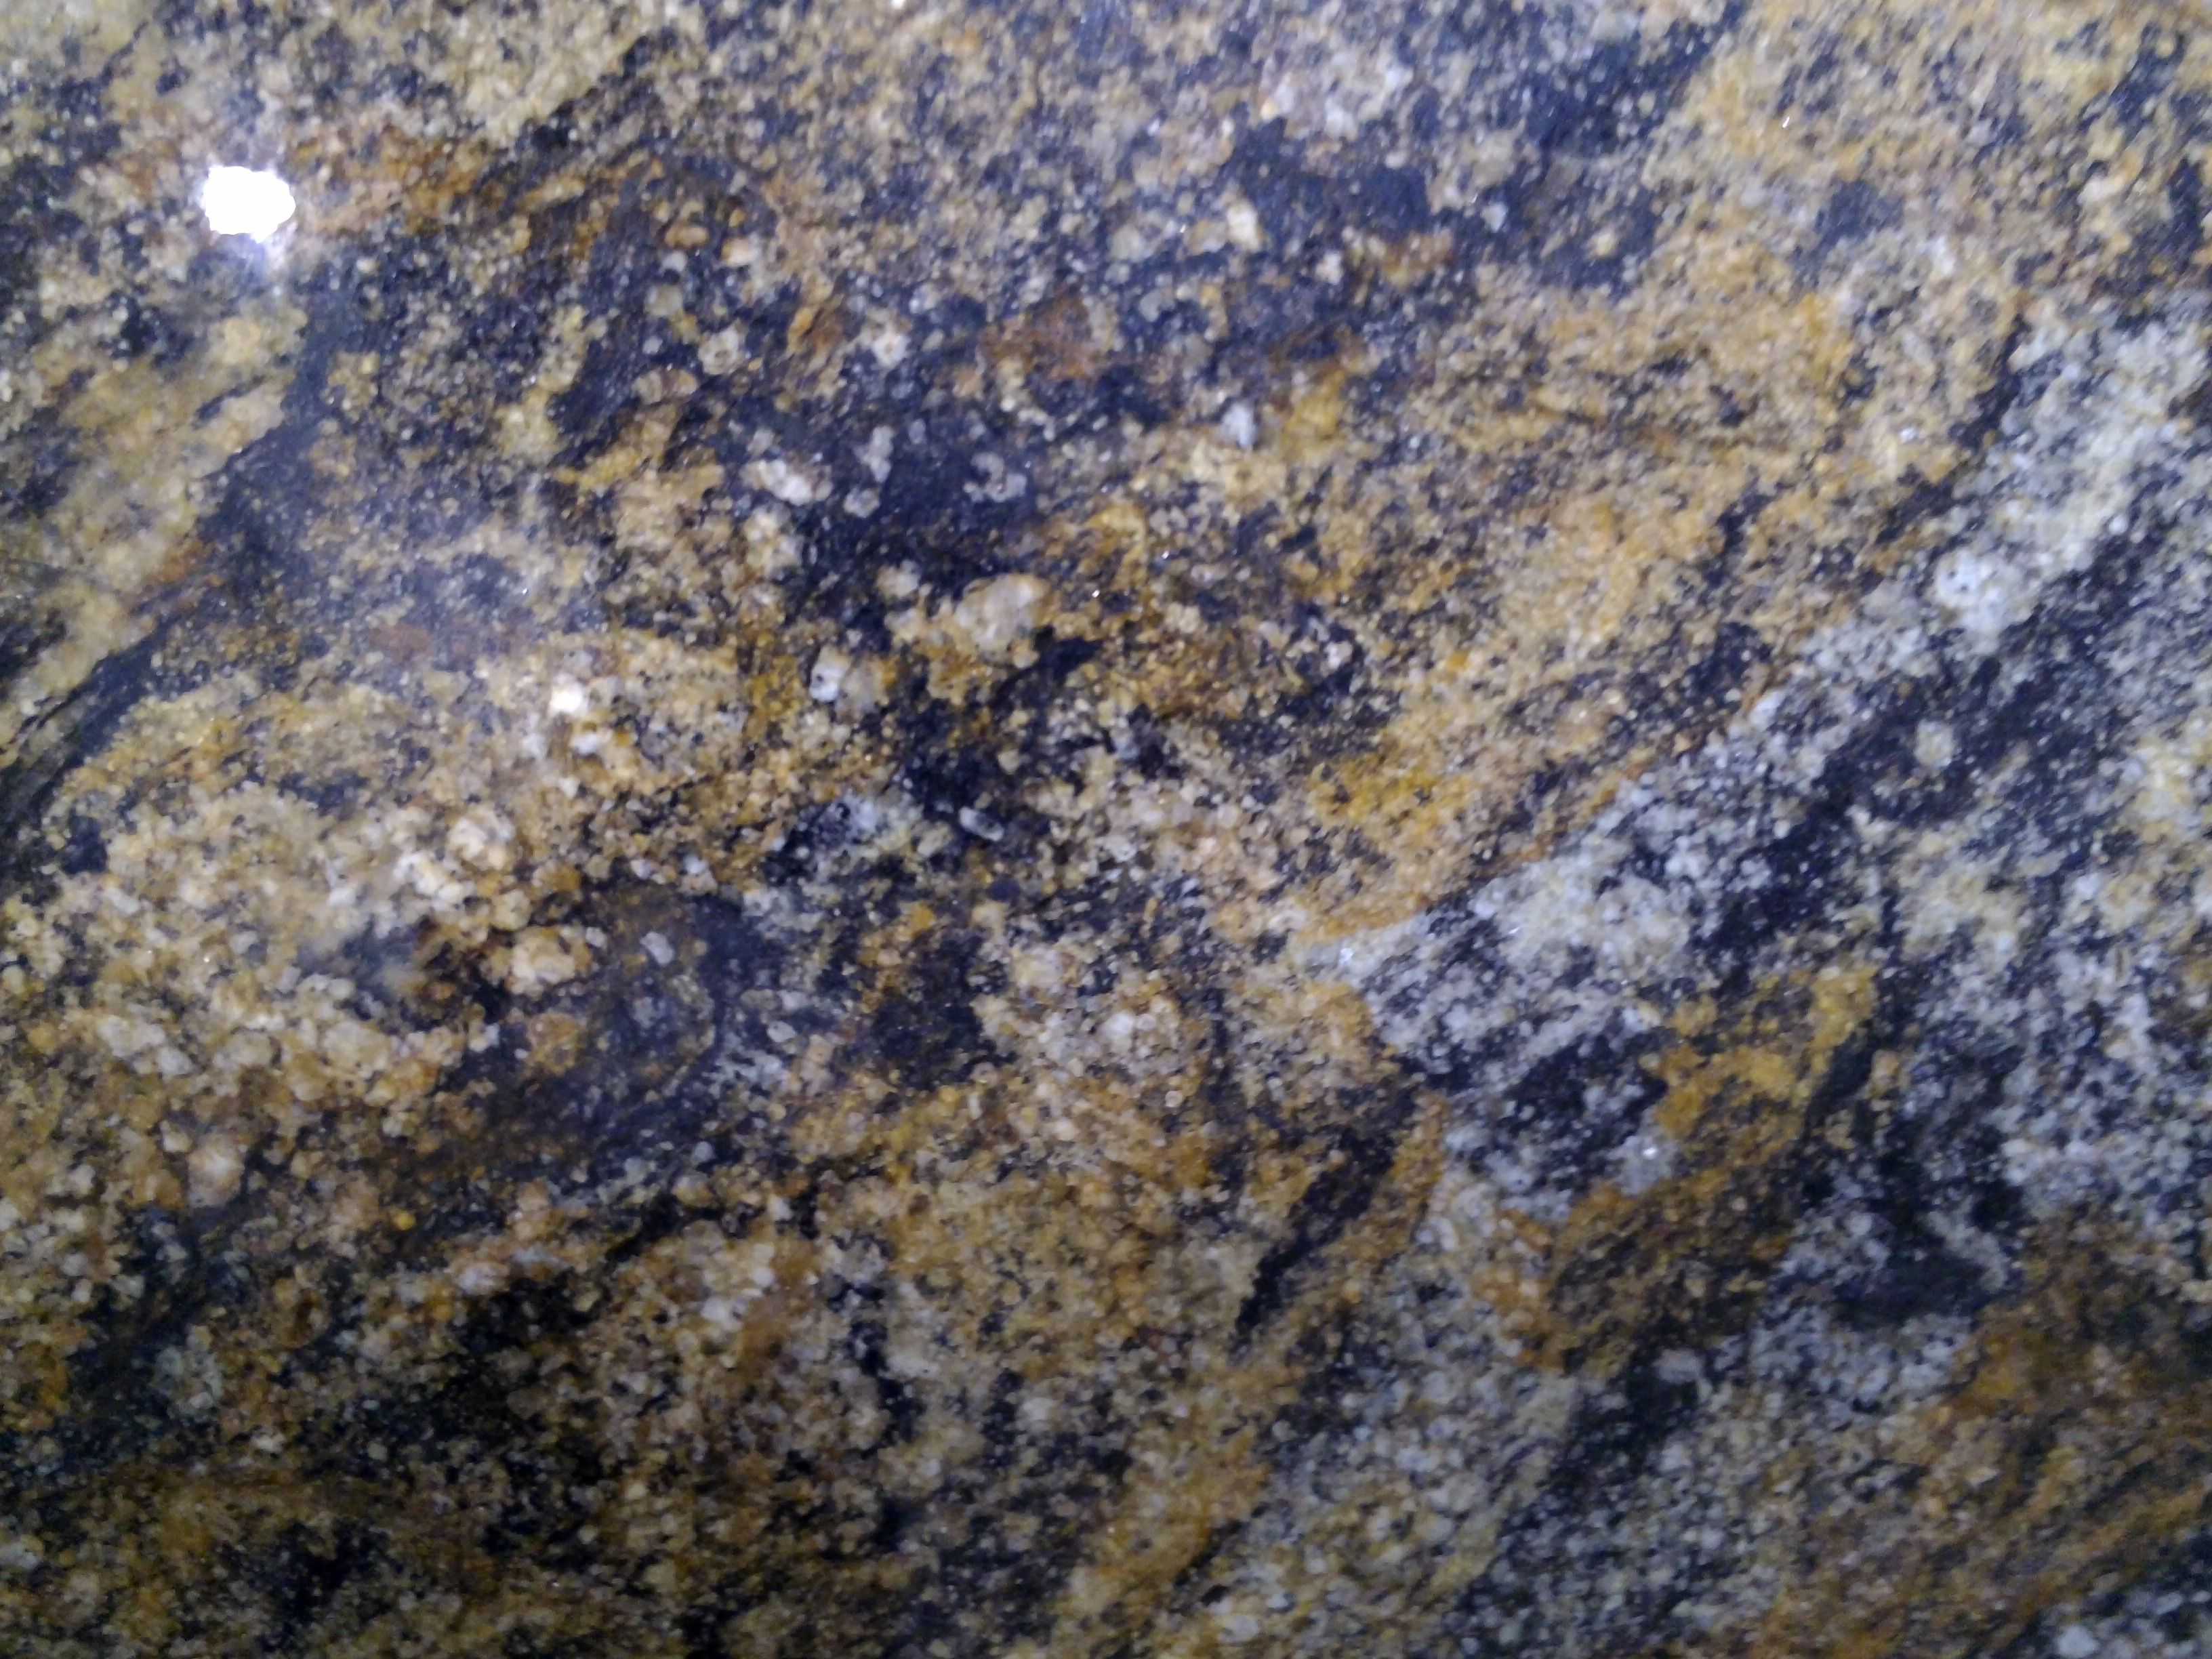 Marrocos Granite Blacks Copper Rust Creams Lot Of Shimmer With Shist And Mica Beautiful Stone Tons Natural Character